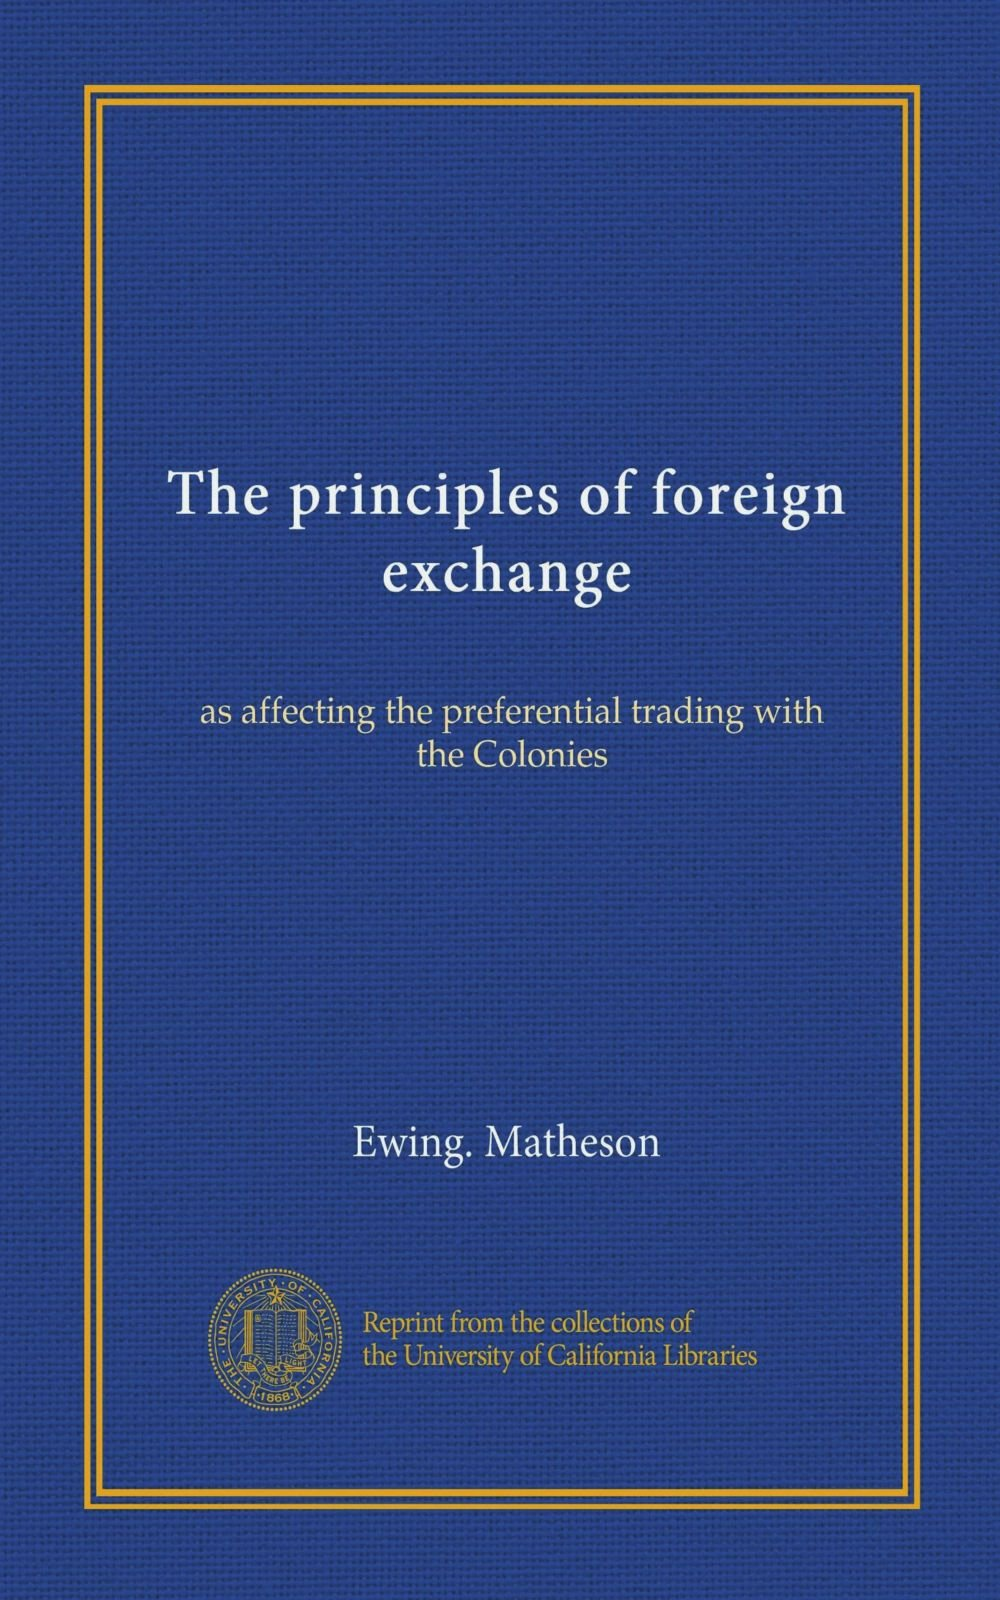 The principles of foreign exchange: as affecting the preferential trading with the Colonies